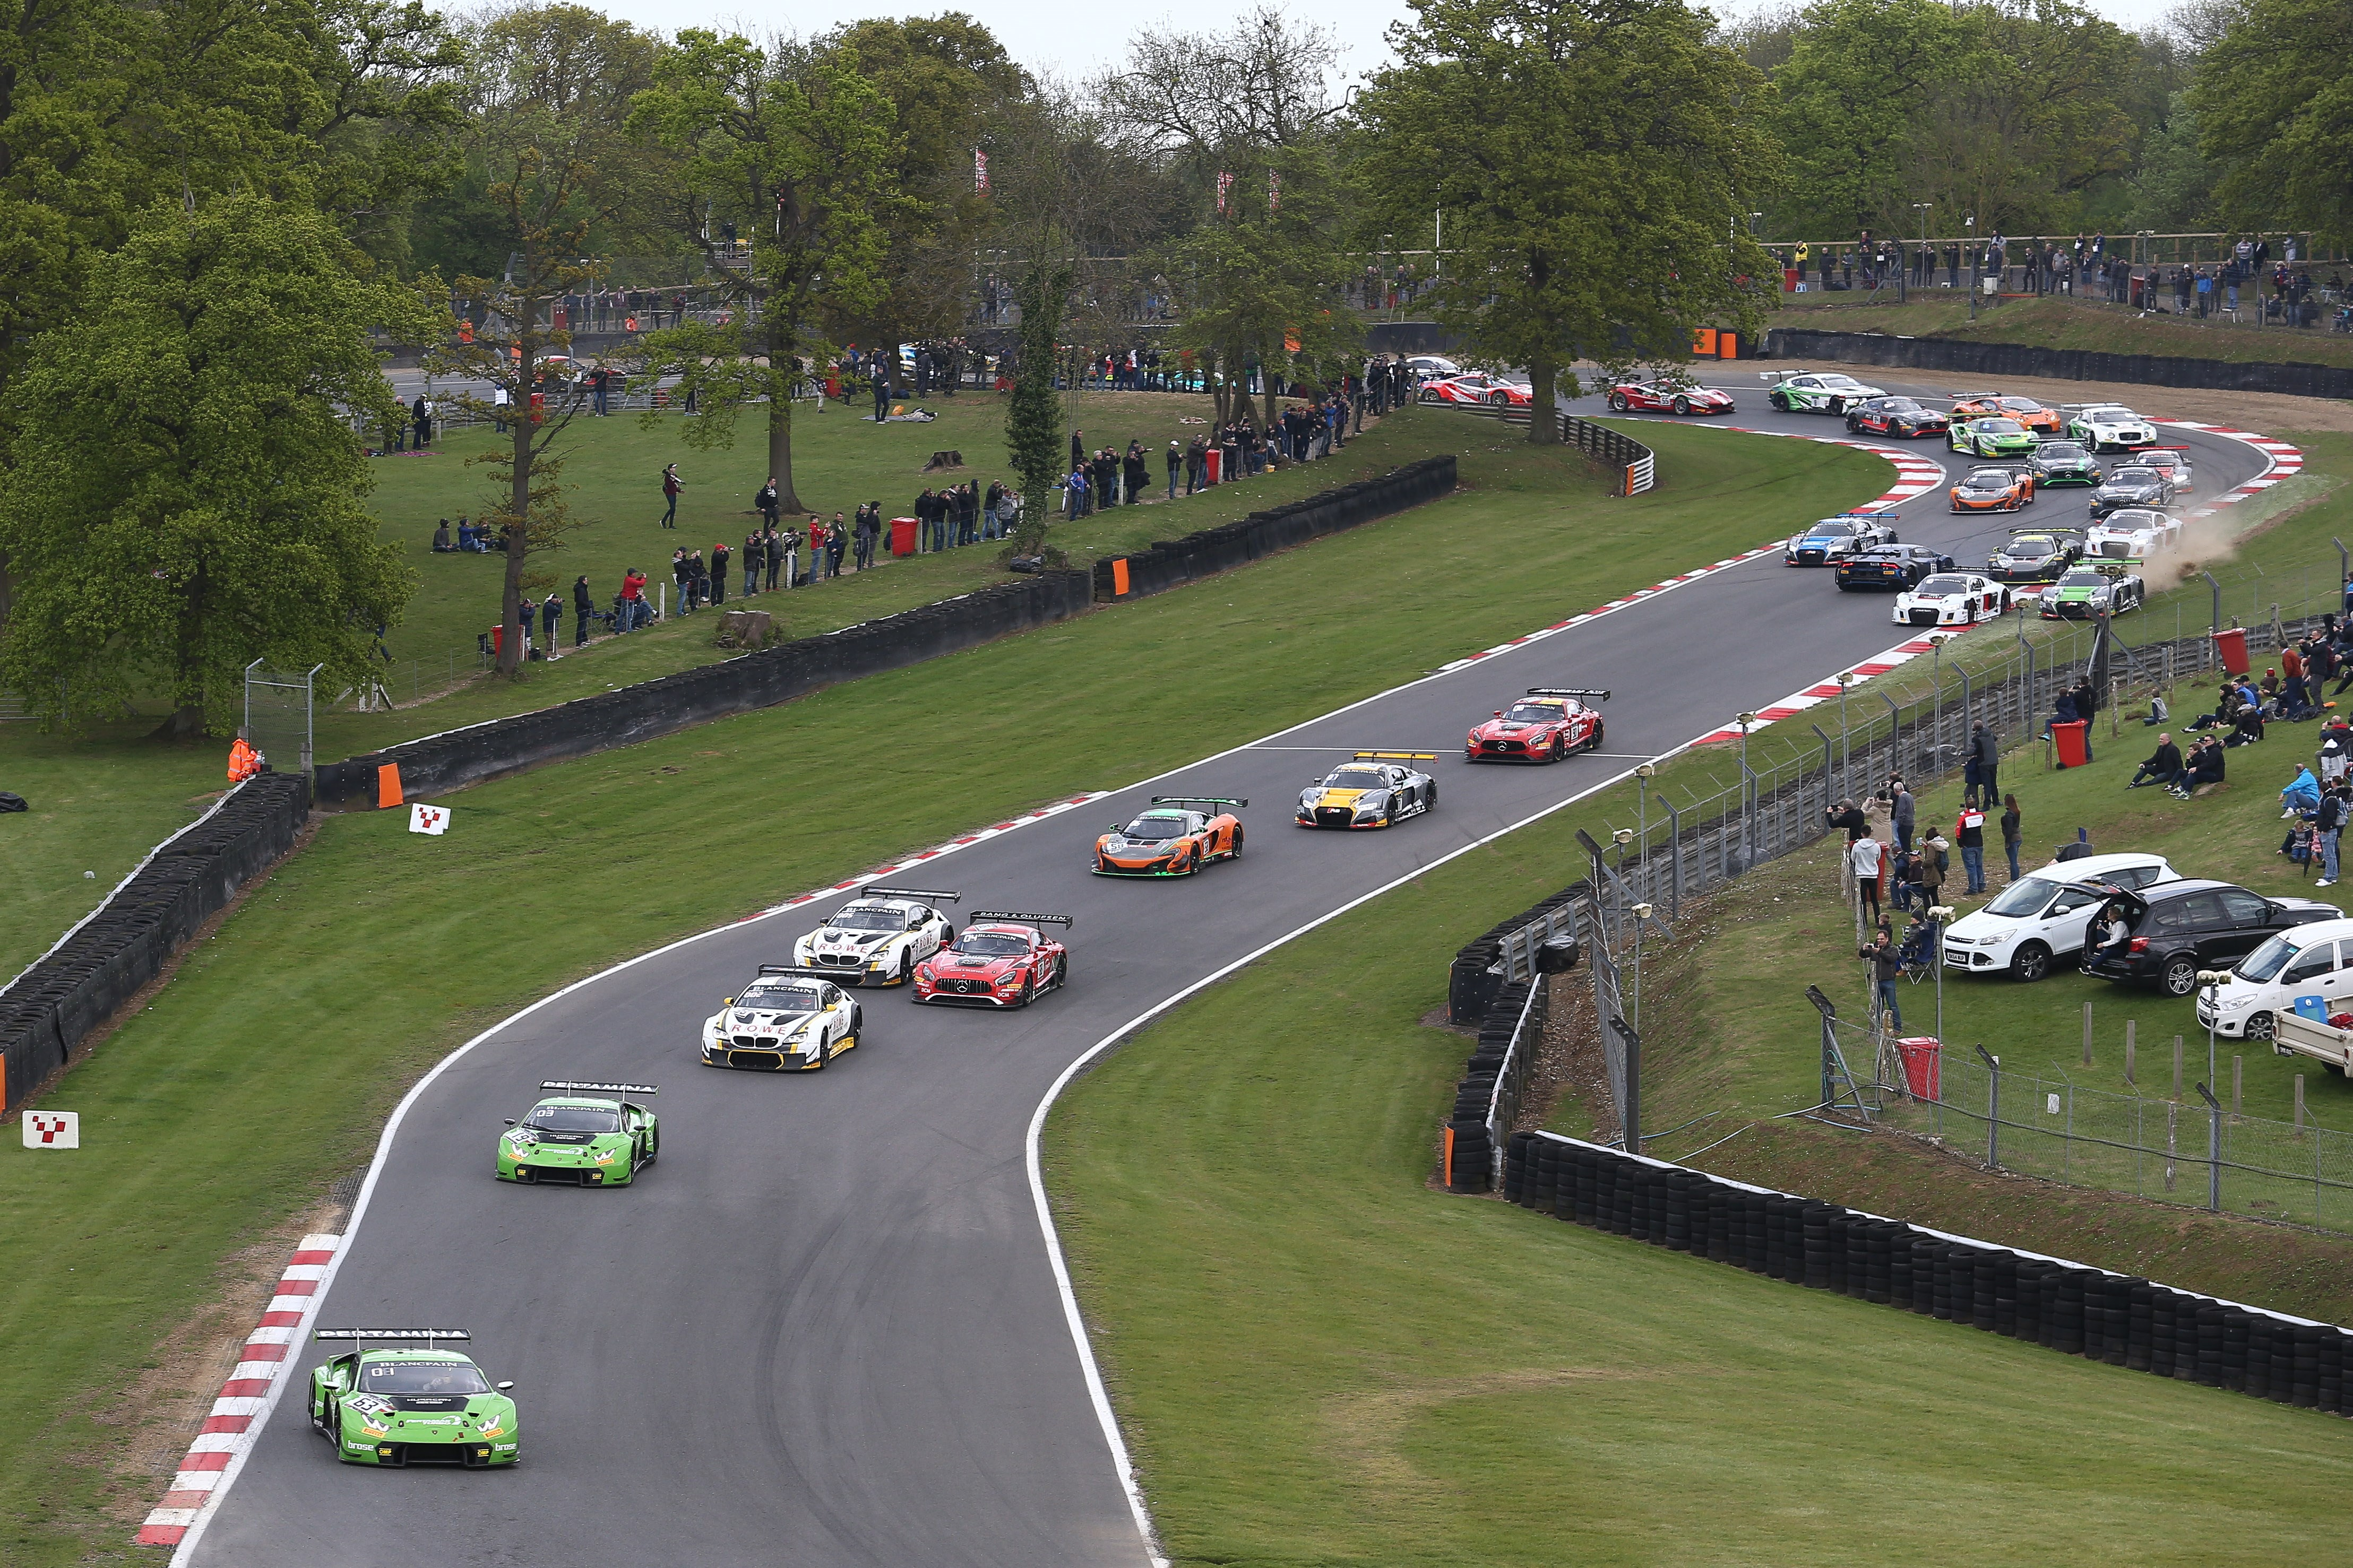 ENGELHART AND BORTOLOTTI CELEBRATE CLEAN SWEEP AT BRANDS